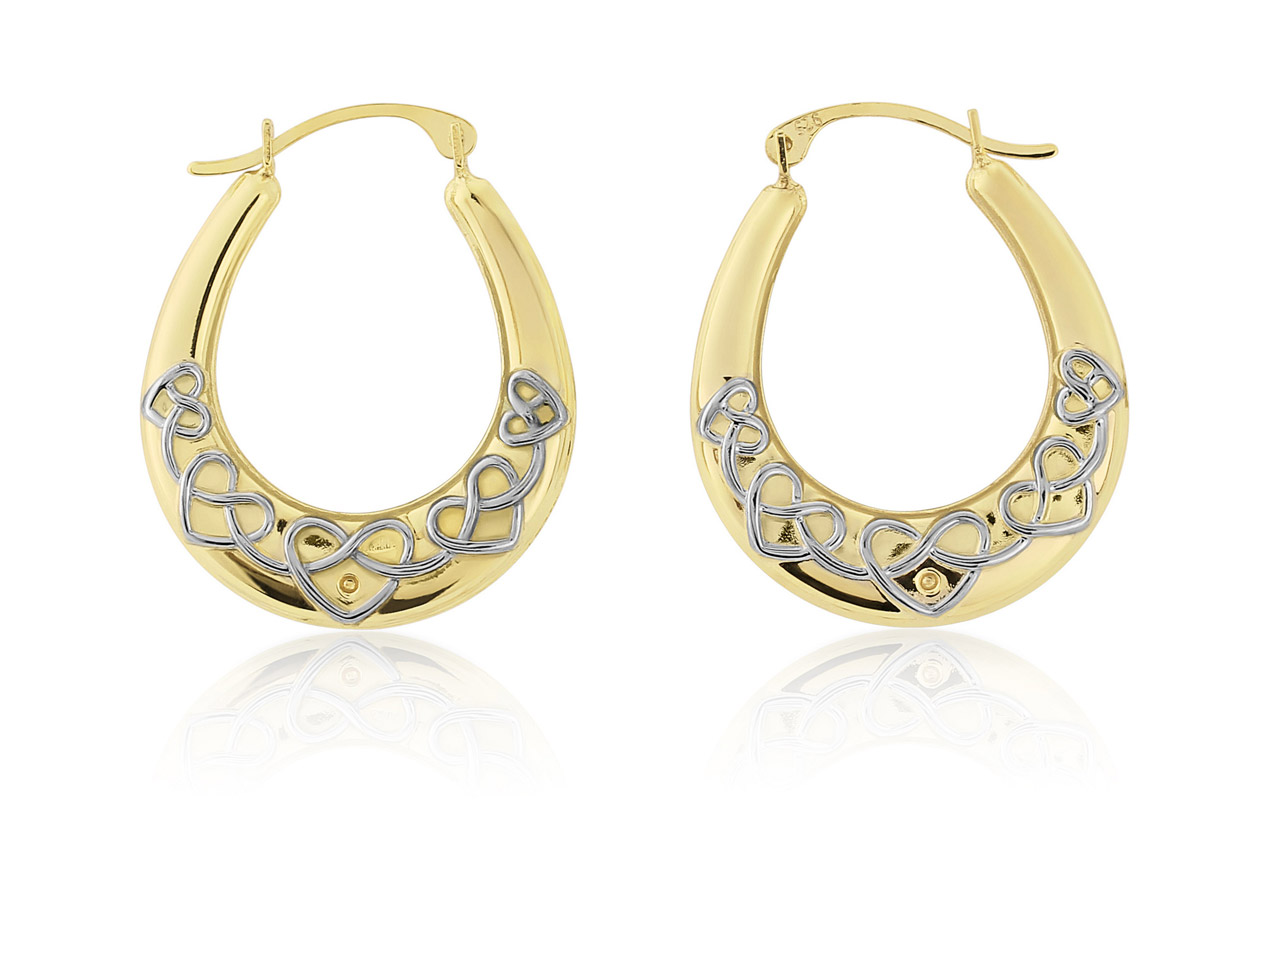 Sterling Silver Gold Plated Creole Earrings With Heart Pattern,       Cubic Zirconia Set